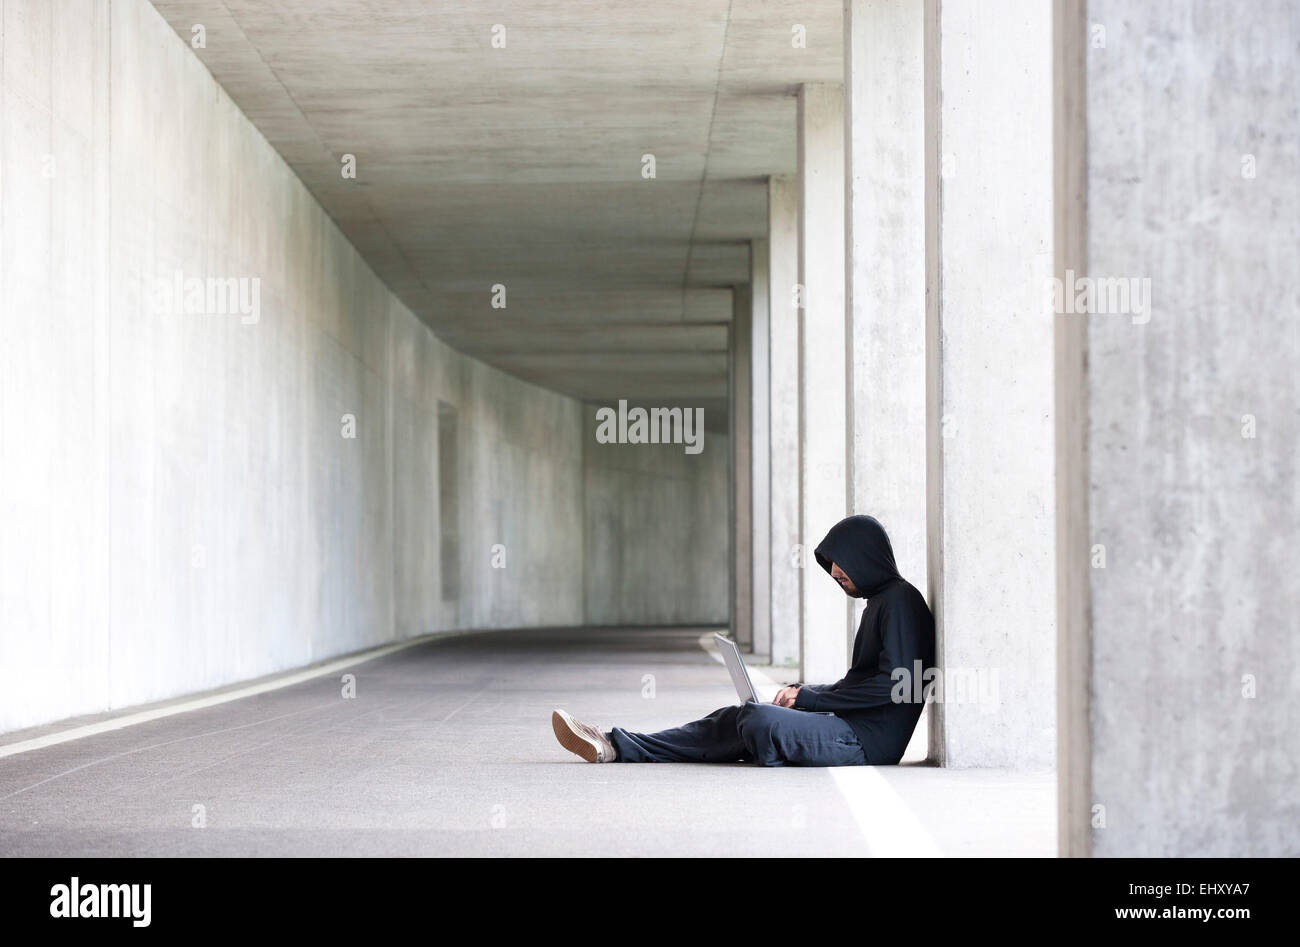 Hacker with laptop sitting in an underground car park - Stock Image